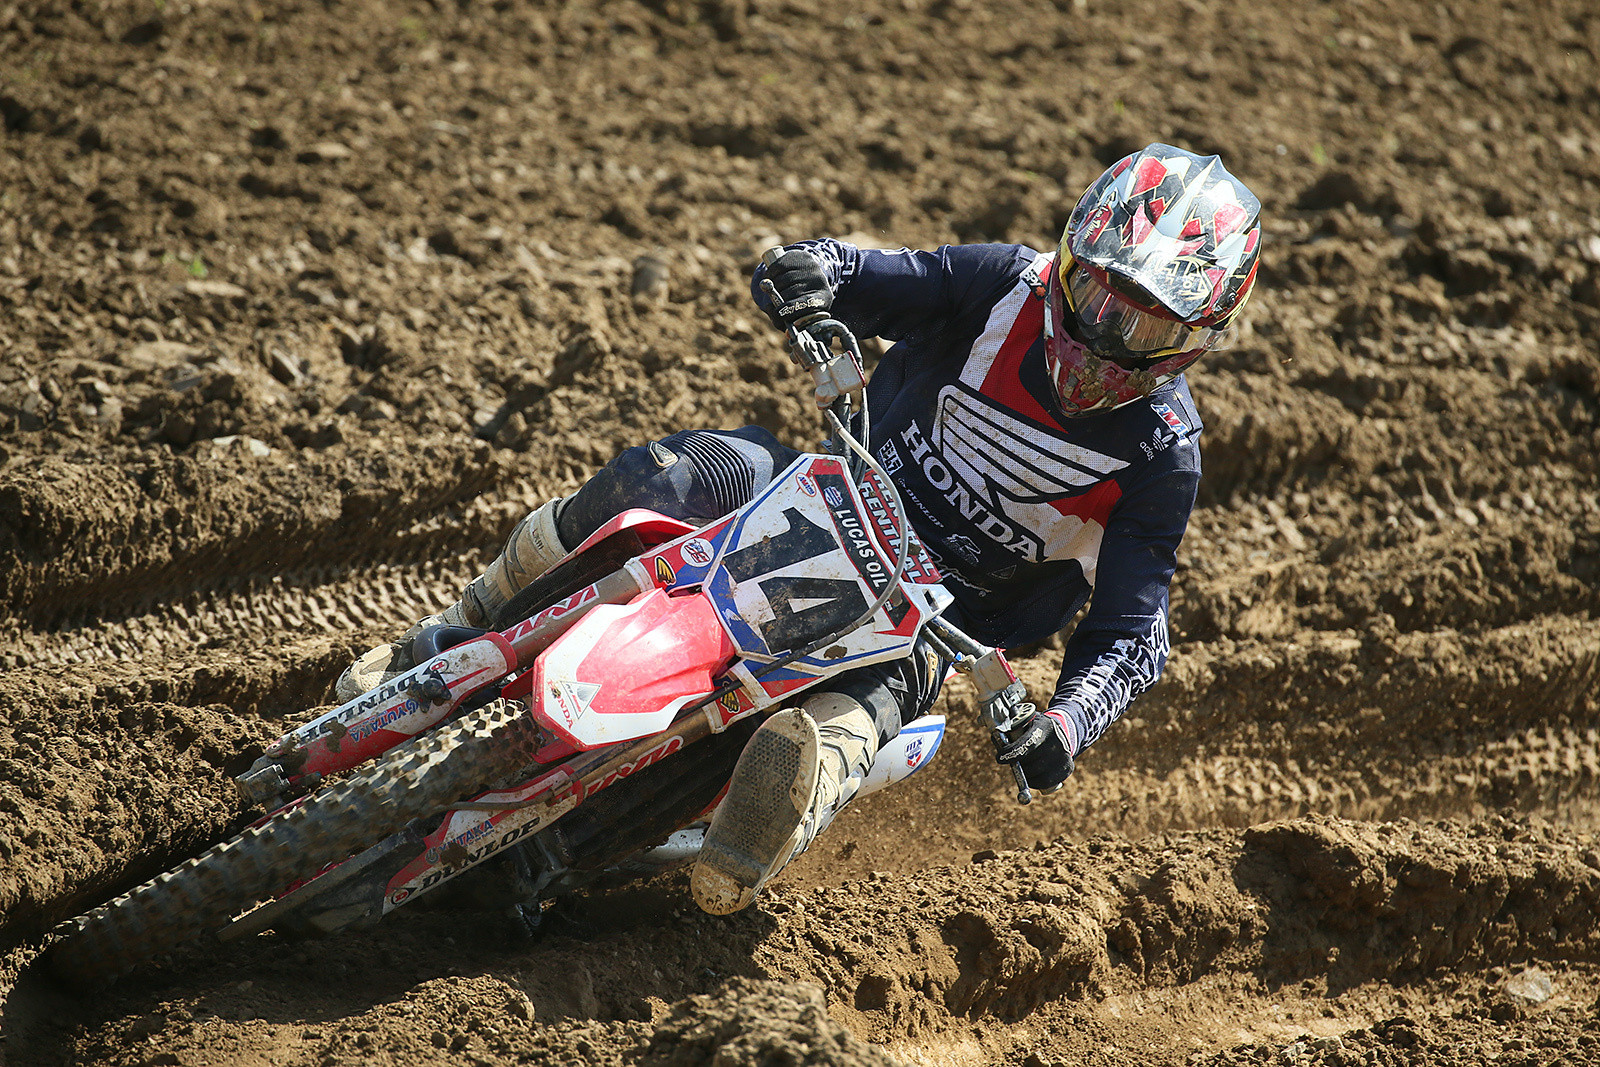 Cole Seely capped the top ten among the 450s with a 10-8 day.